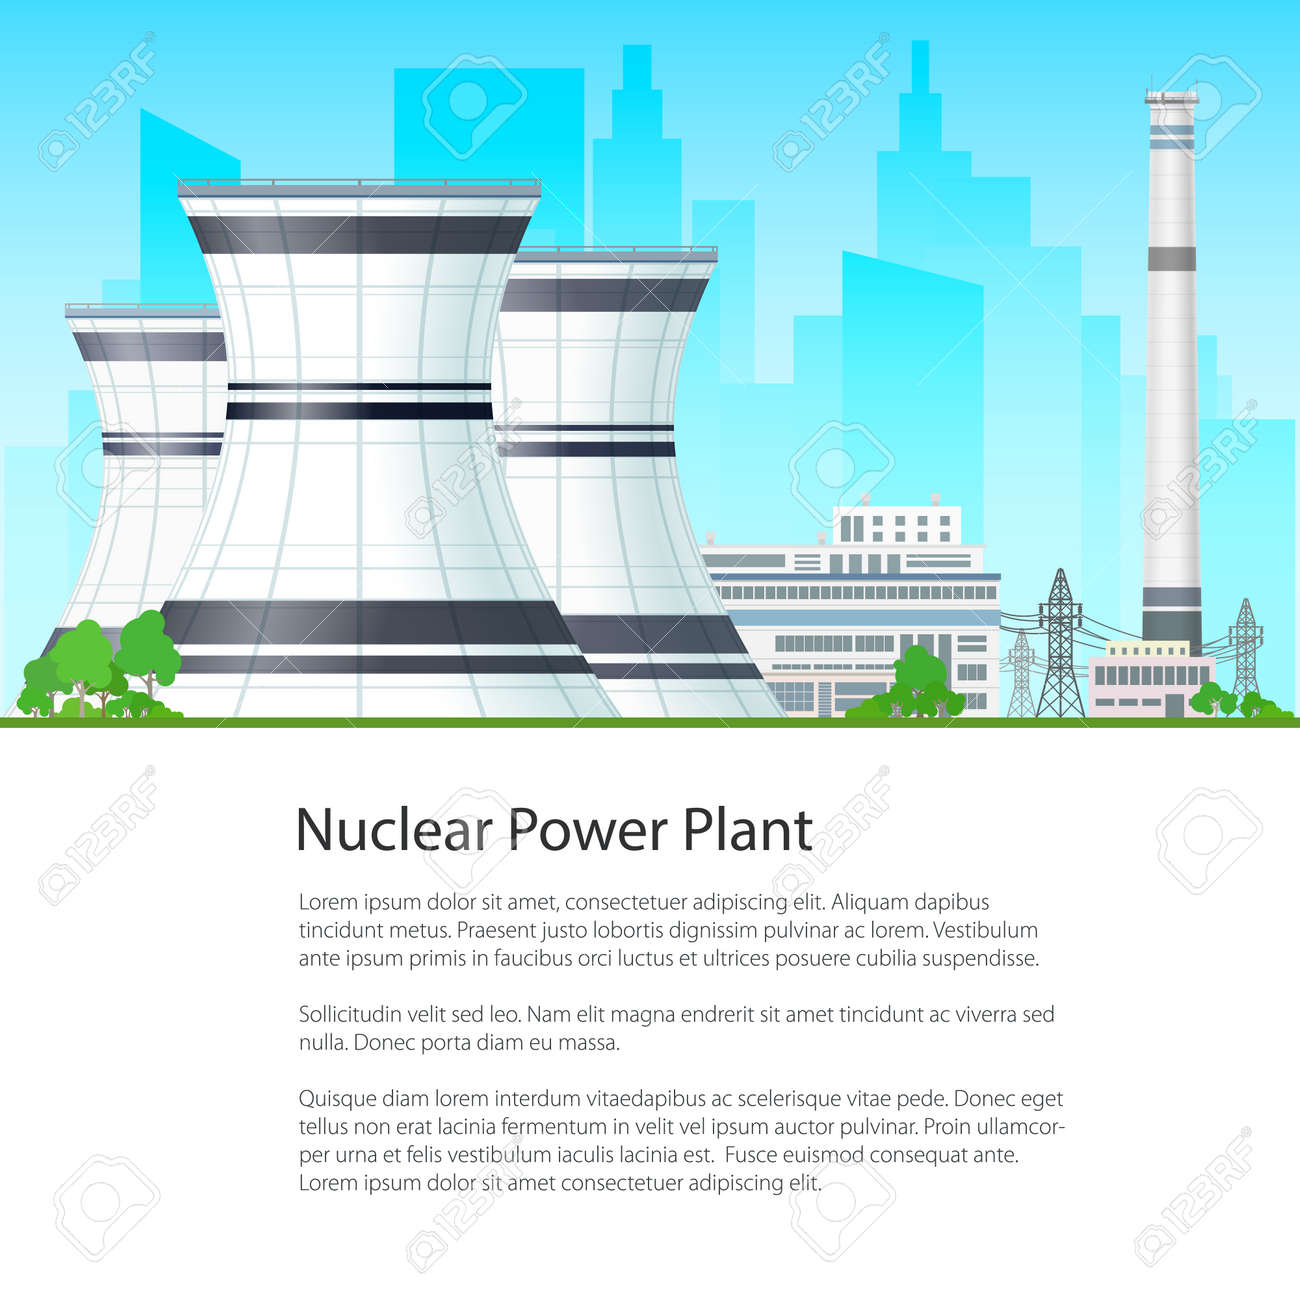 Nuclear power plant on the background of the city and text thermal nuclear power plant on the background of the city and text thermal station nuclear ccuart Choice Image